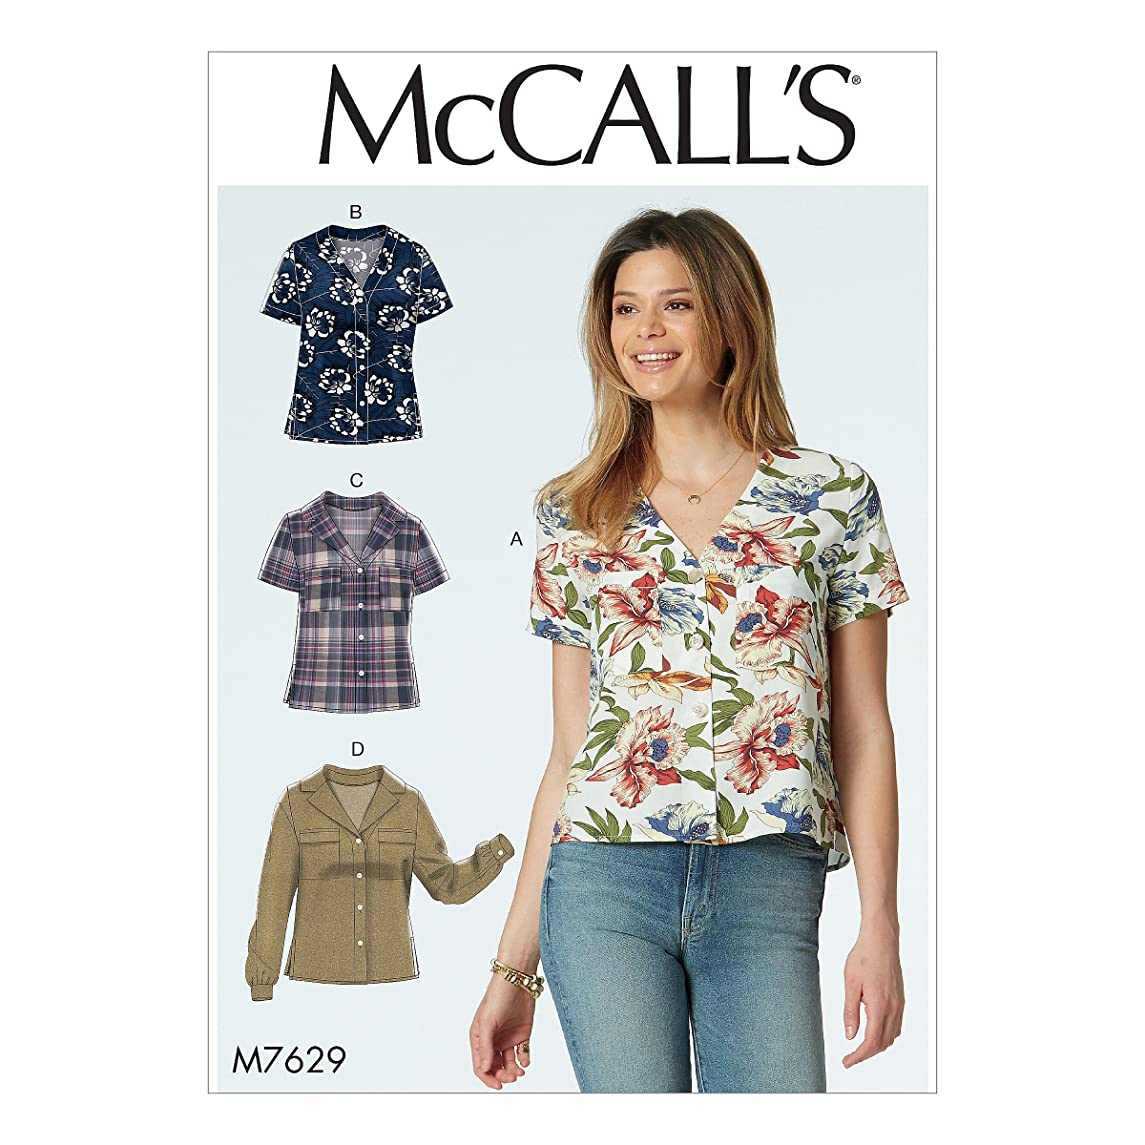 McCall Patterns M7629A50 Misses' Button-Front Collar and Sleeve Options Tops